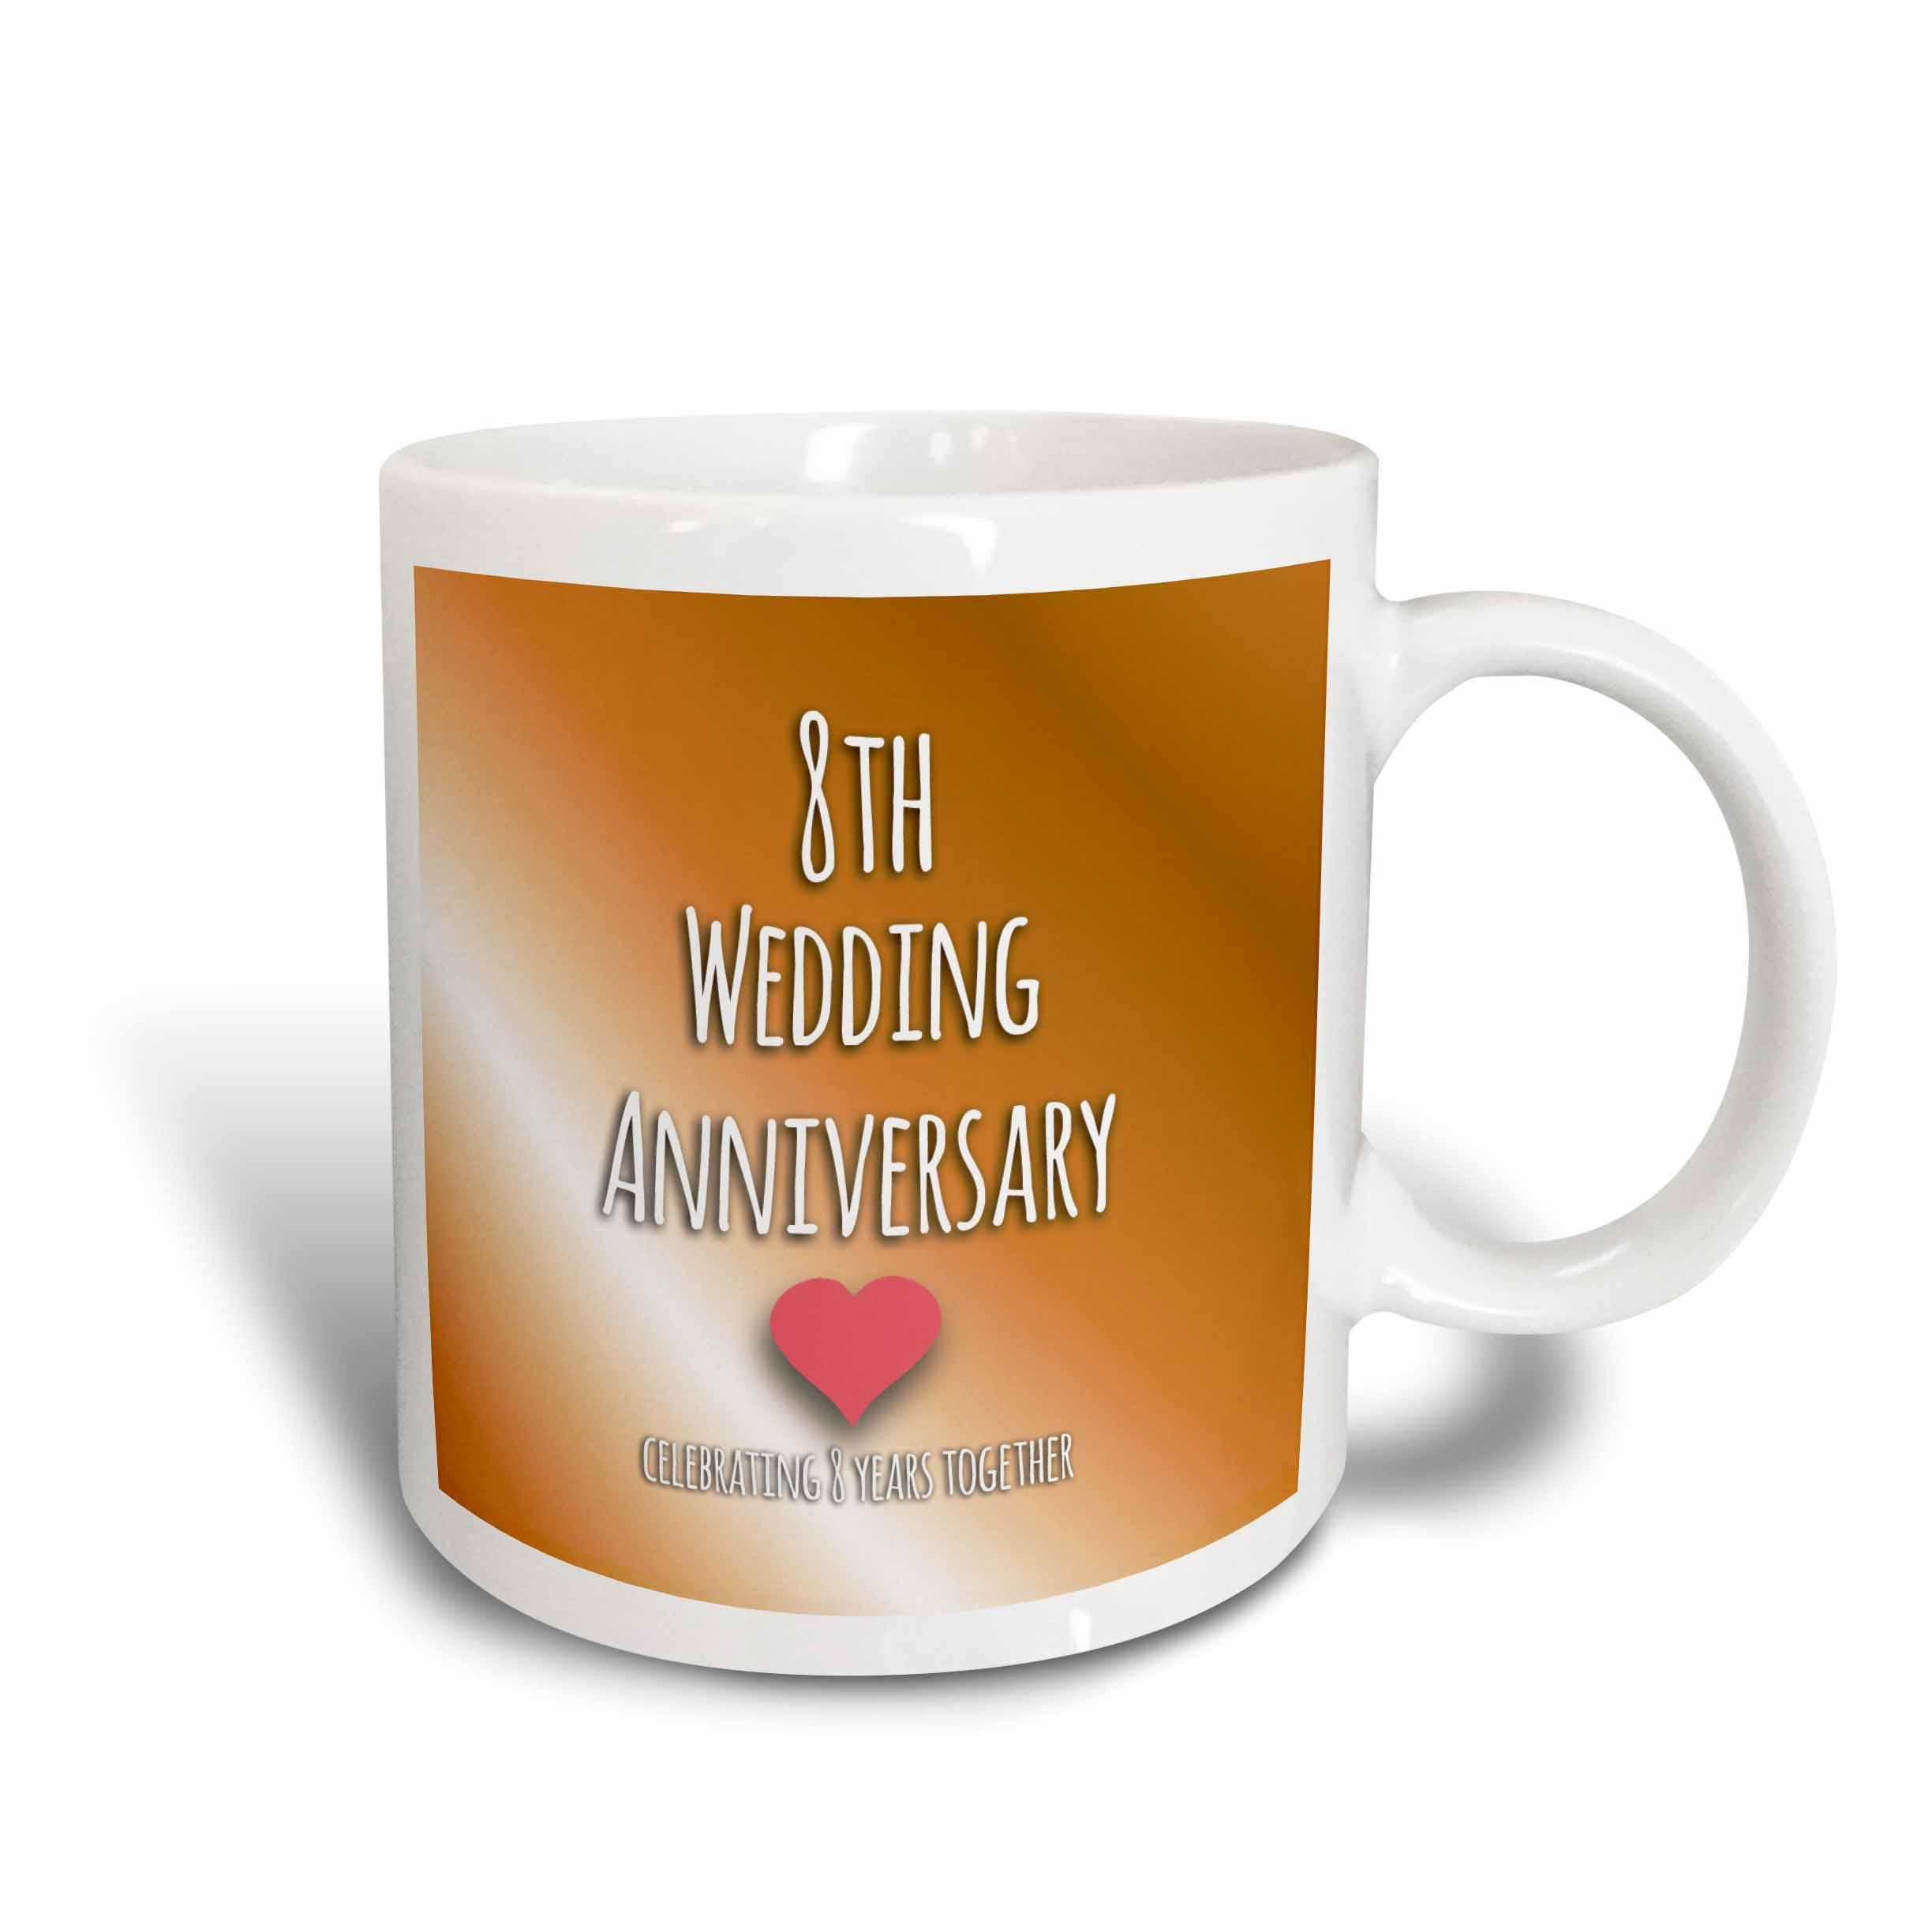 3dRose 8th Wedding Anniversary gift - Bronze celebrating 8 years together eighth anniversaries eight yrs, Ceramic Mug, 15-ounce